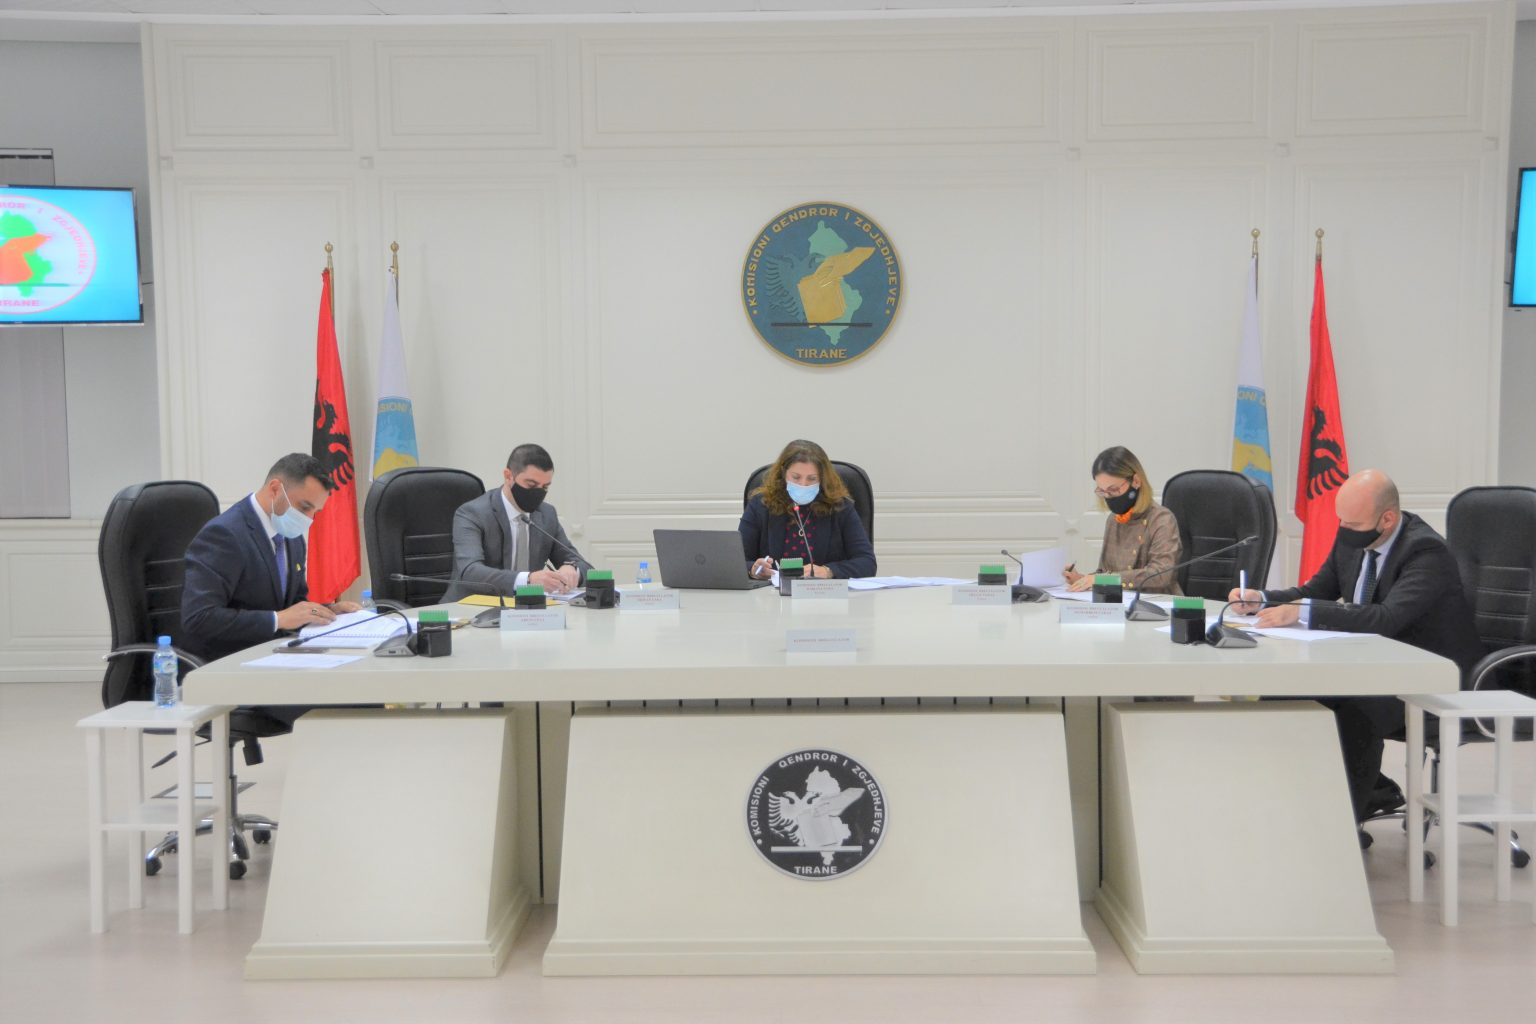 Albania: Regulatory Commission approves electronic voting type for April 25 Elections